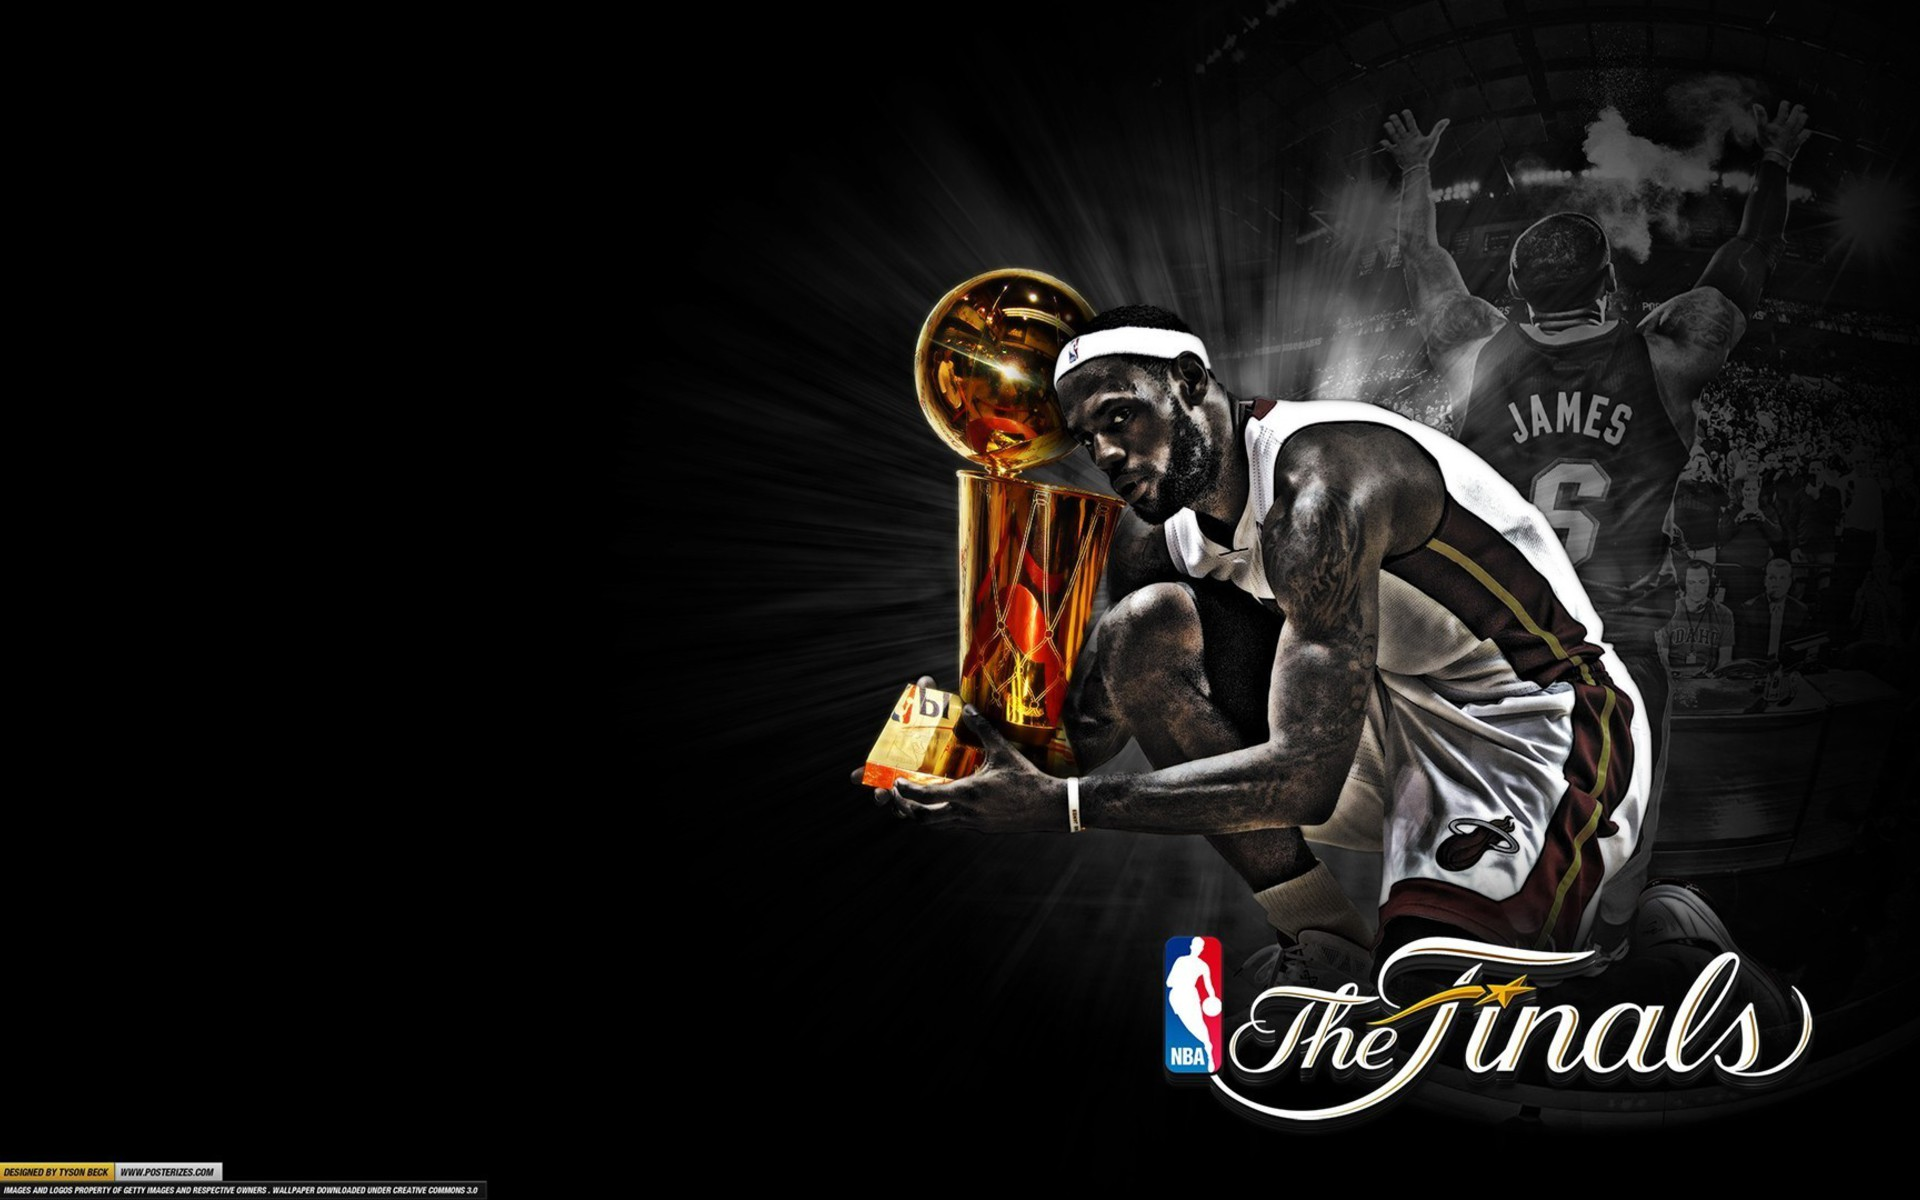 Wallpaper Resolutions Lebron James Miami Heat Wallpapers Iphone